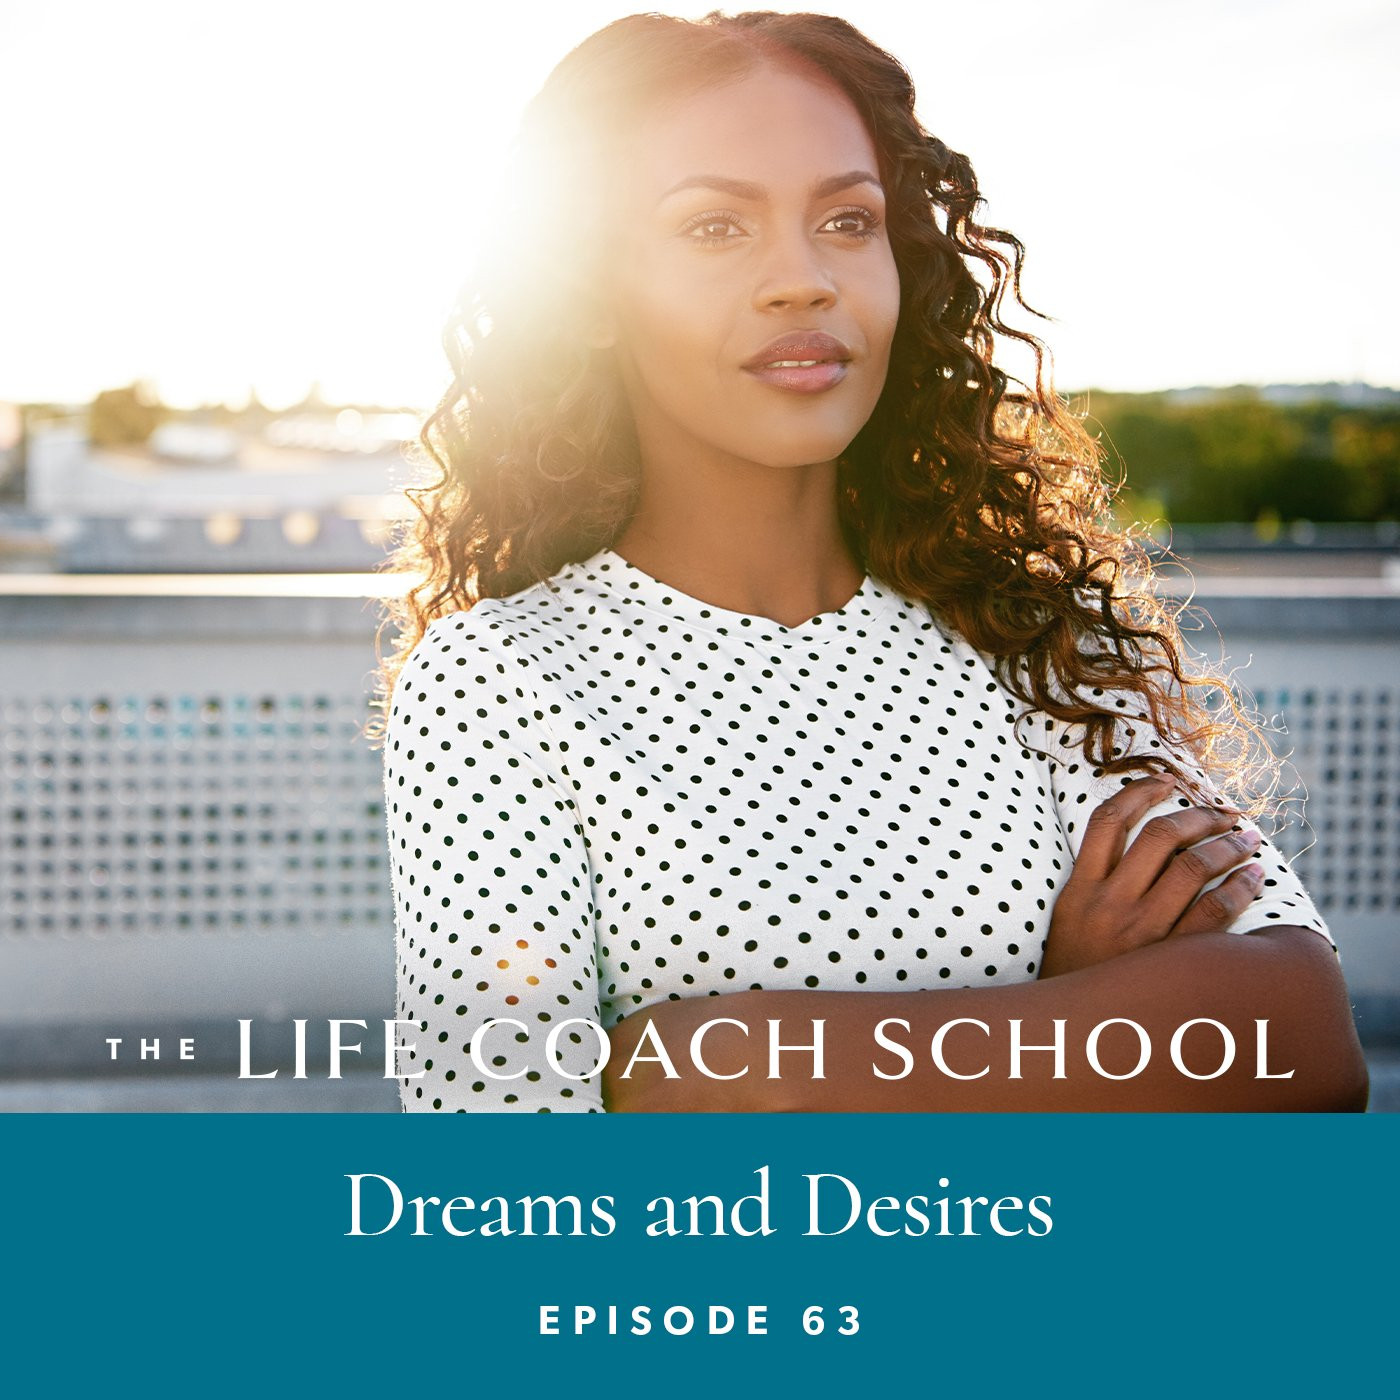 The Life Coach School Podcast with Brooke Castillo | Episode 63 | Dreams and Desires